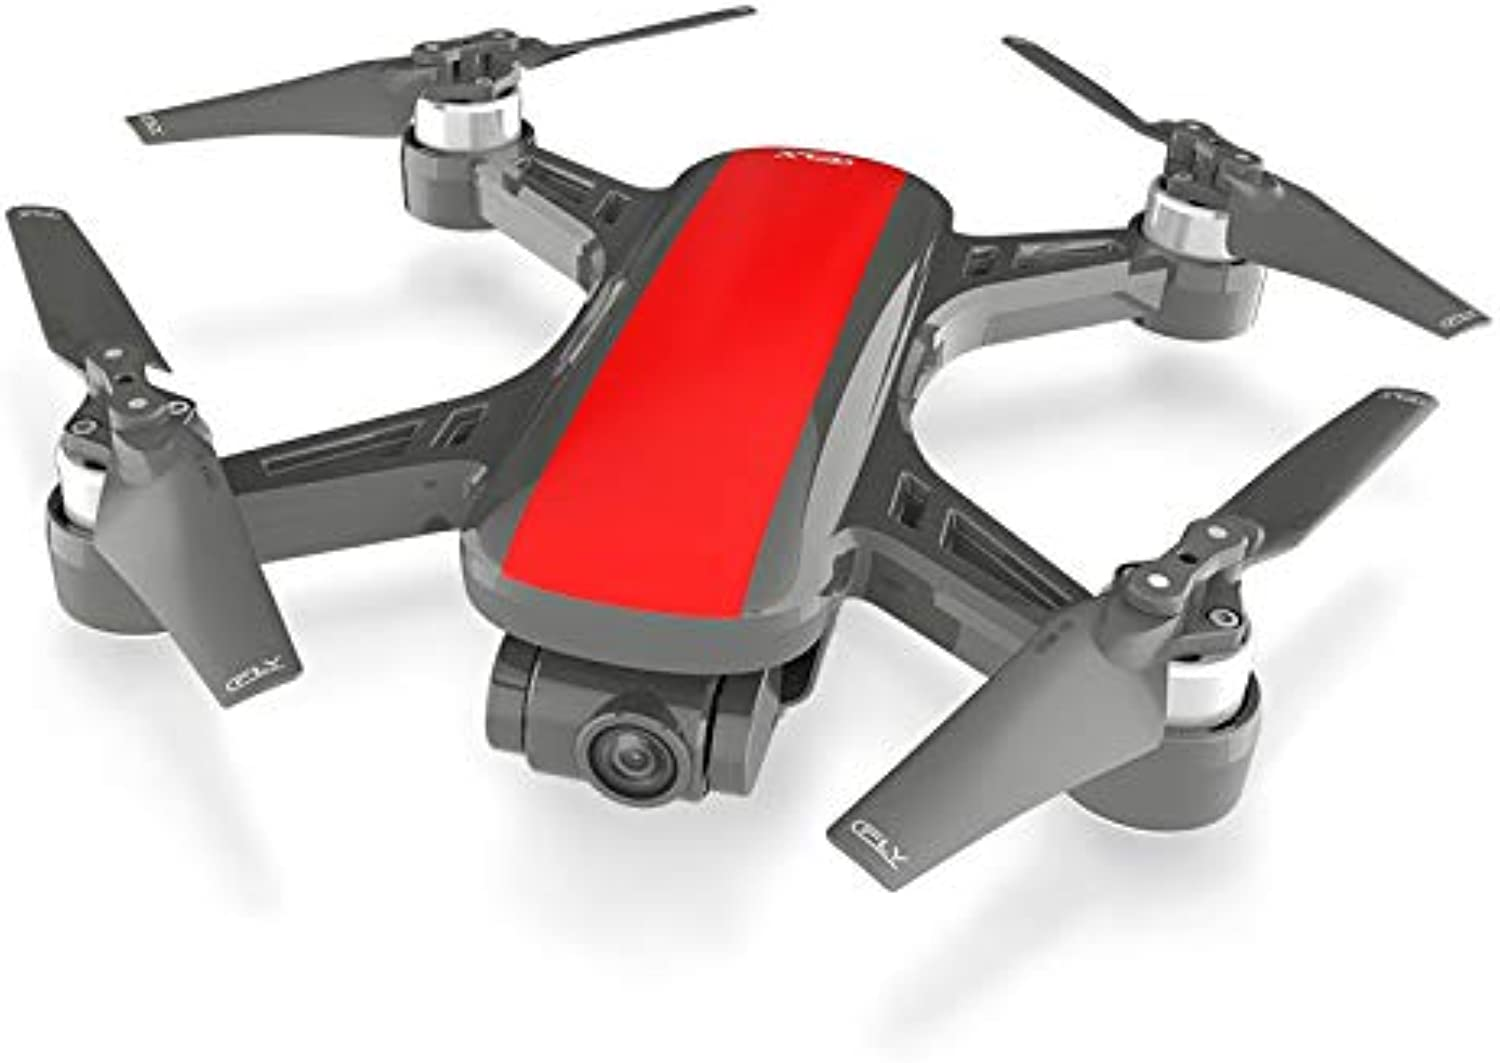 MeterMall Dream 5G Altitude Hold Drone GPS Optical Flow Positioning Follow Me RC Quadcopter One Key Return(Red)